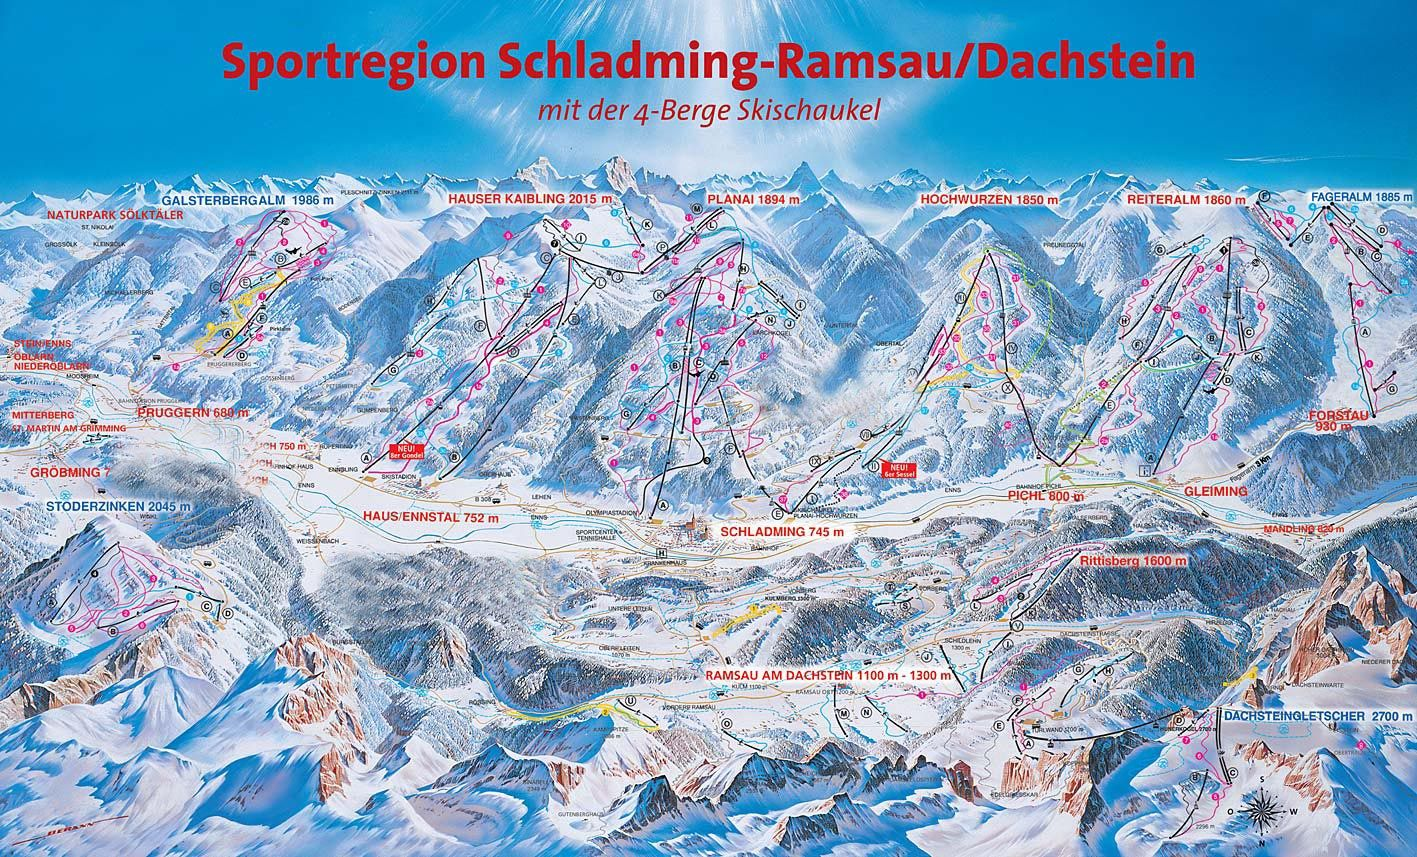 Ski Camp in Schladming (Only in Hungarian) Schladming, Ausztria #ed4f2aef-80d0-4476-b331-bfb6c9b99811